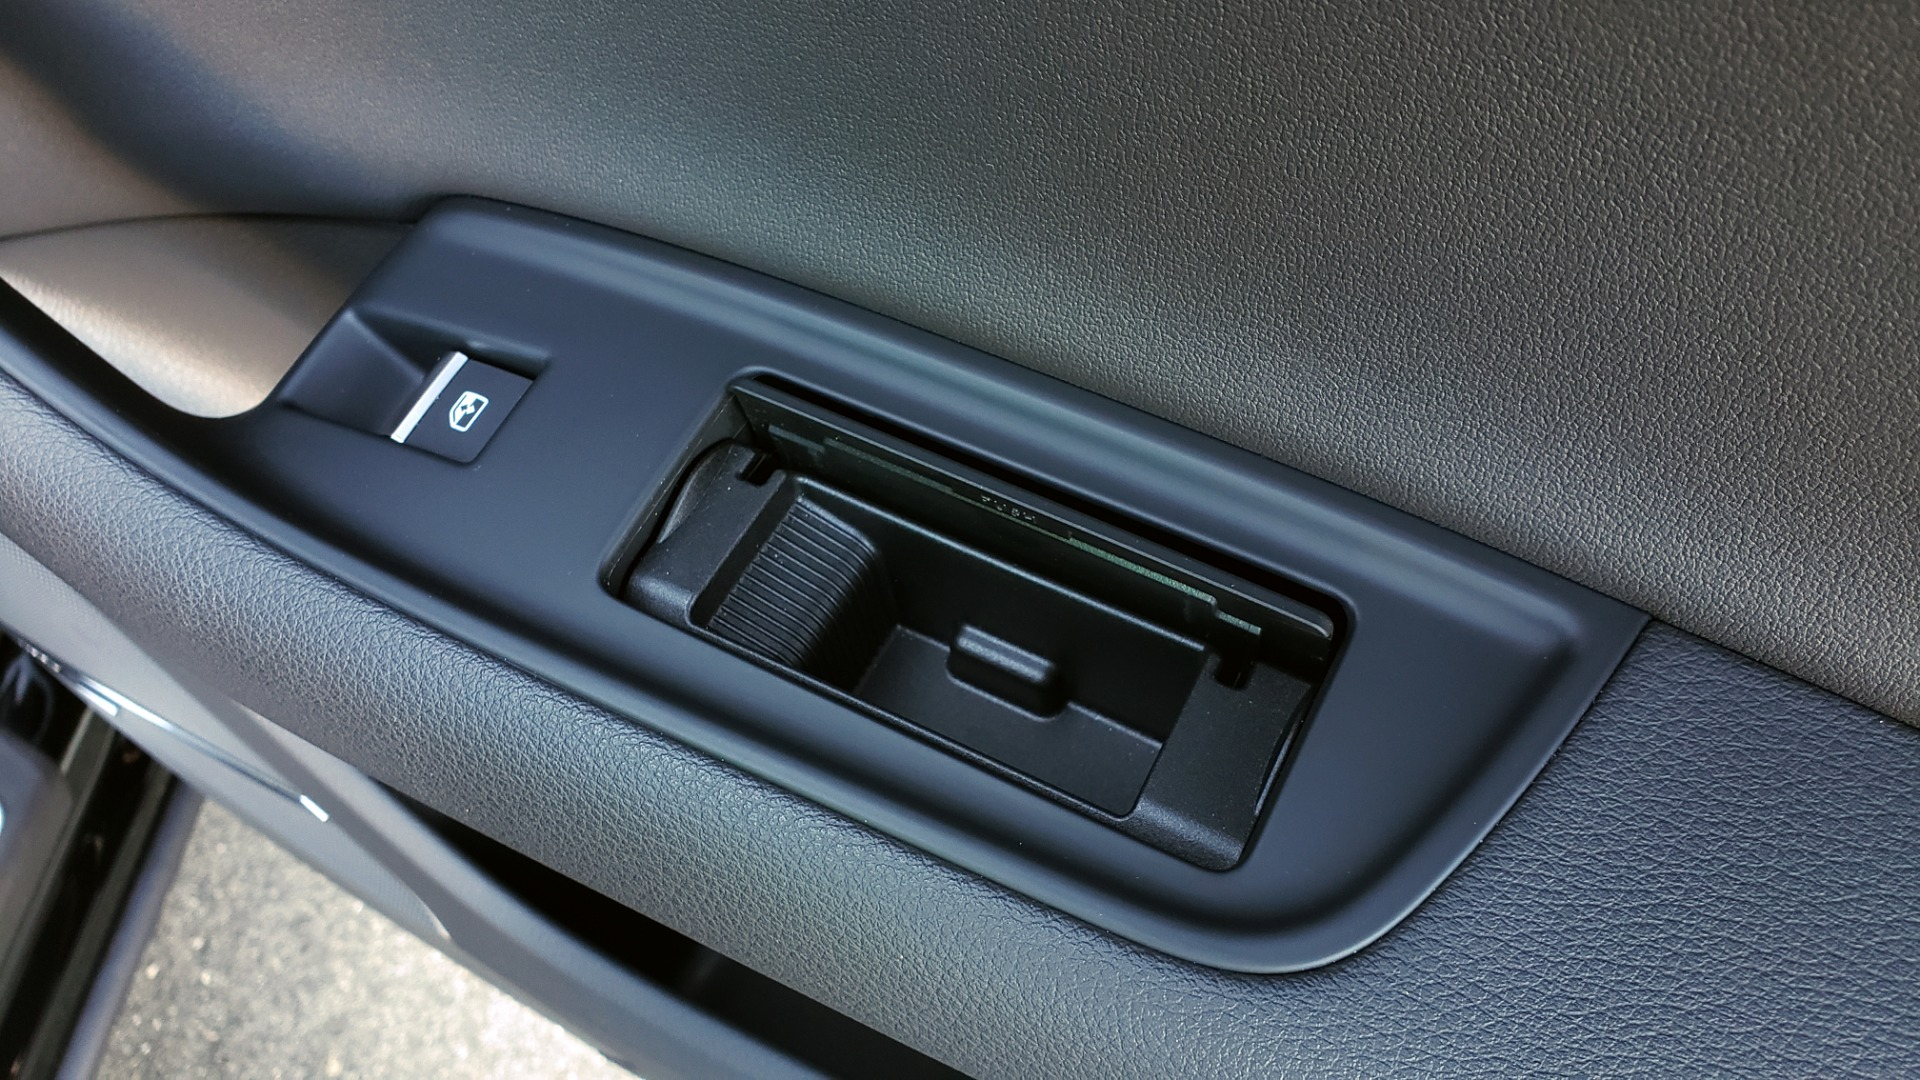 Used 2020 Audi Q7 PREMIUM PLUS / NAV / SUNROOF / 3-ROW / REARVIEW for sale $50,695 at Formula Imports in Charlotte NC 28227 78